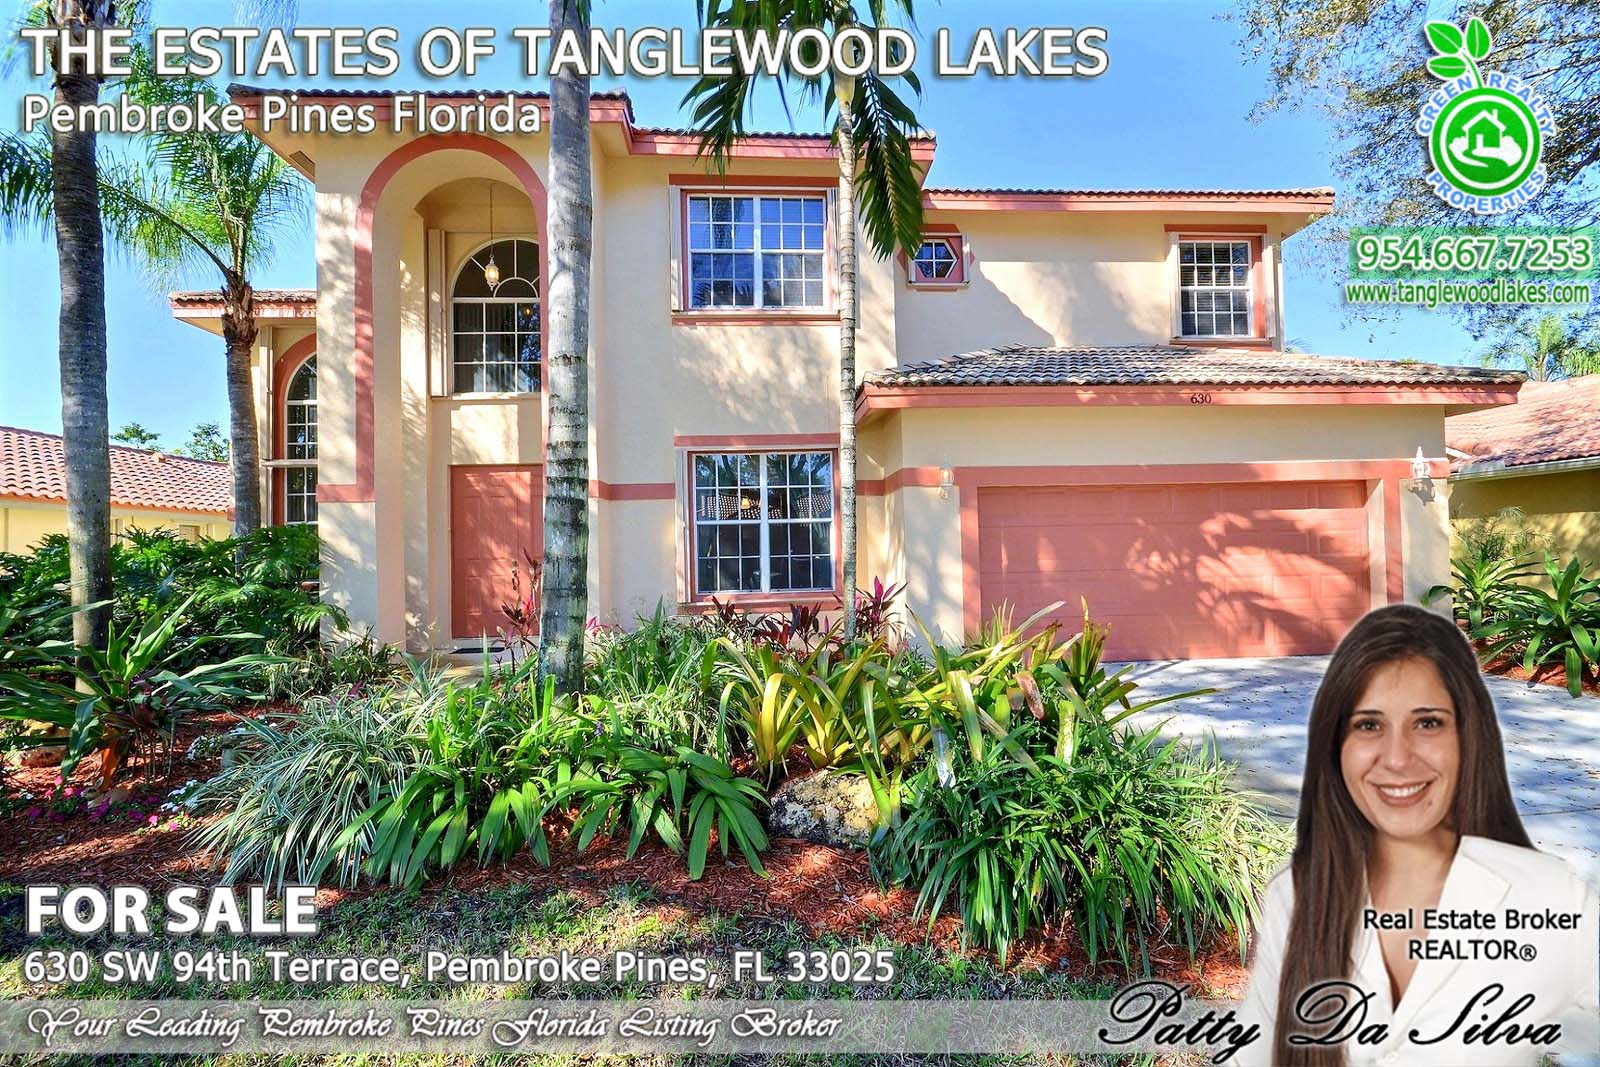 The Estates of Tanglewood Lakes agent in pembroke pines